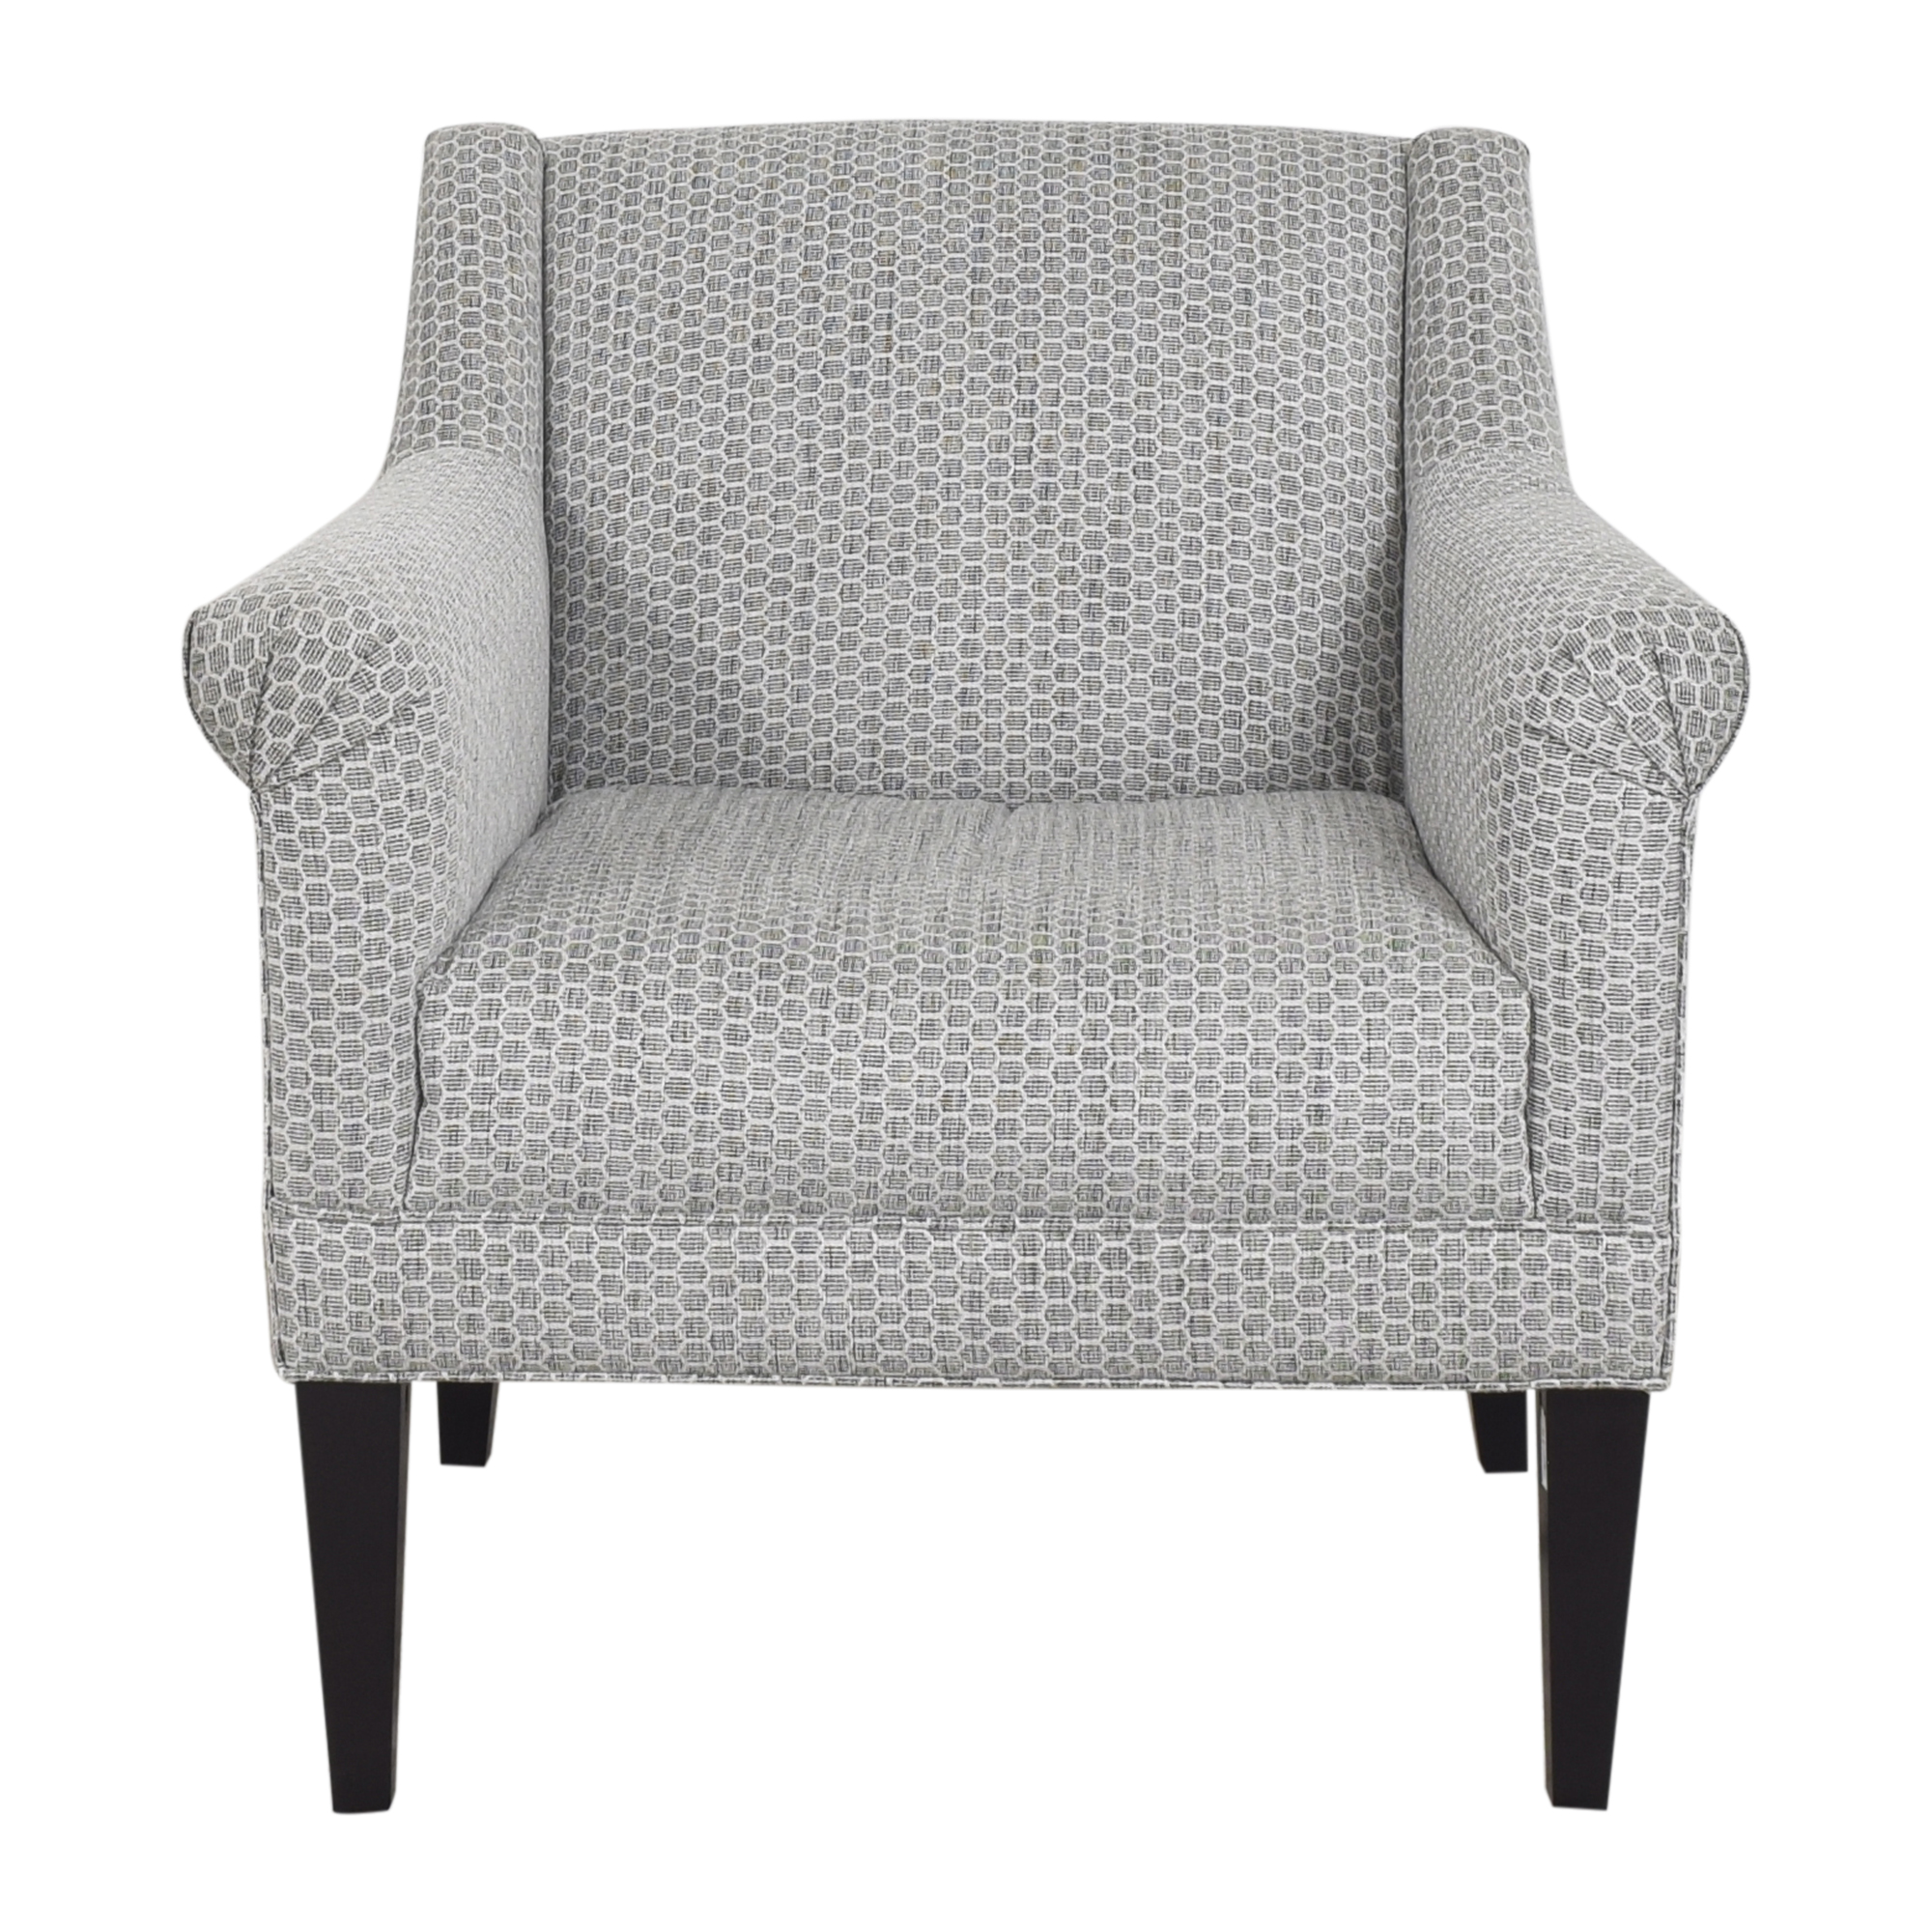 Jonathan Louis Jonathan Louis Margaret Accent Chair discount